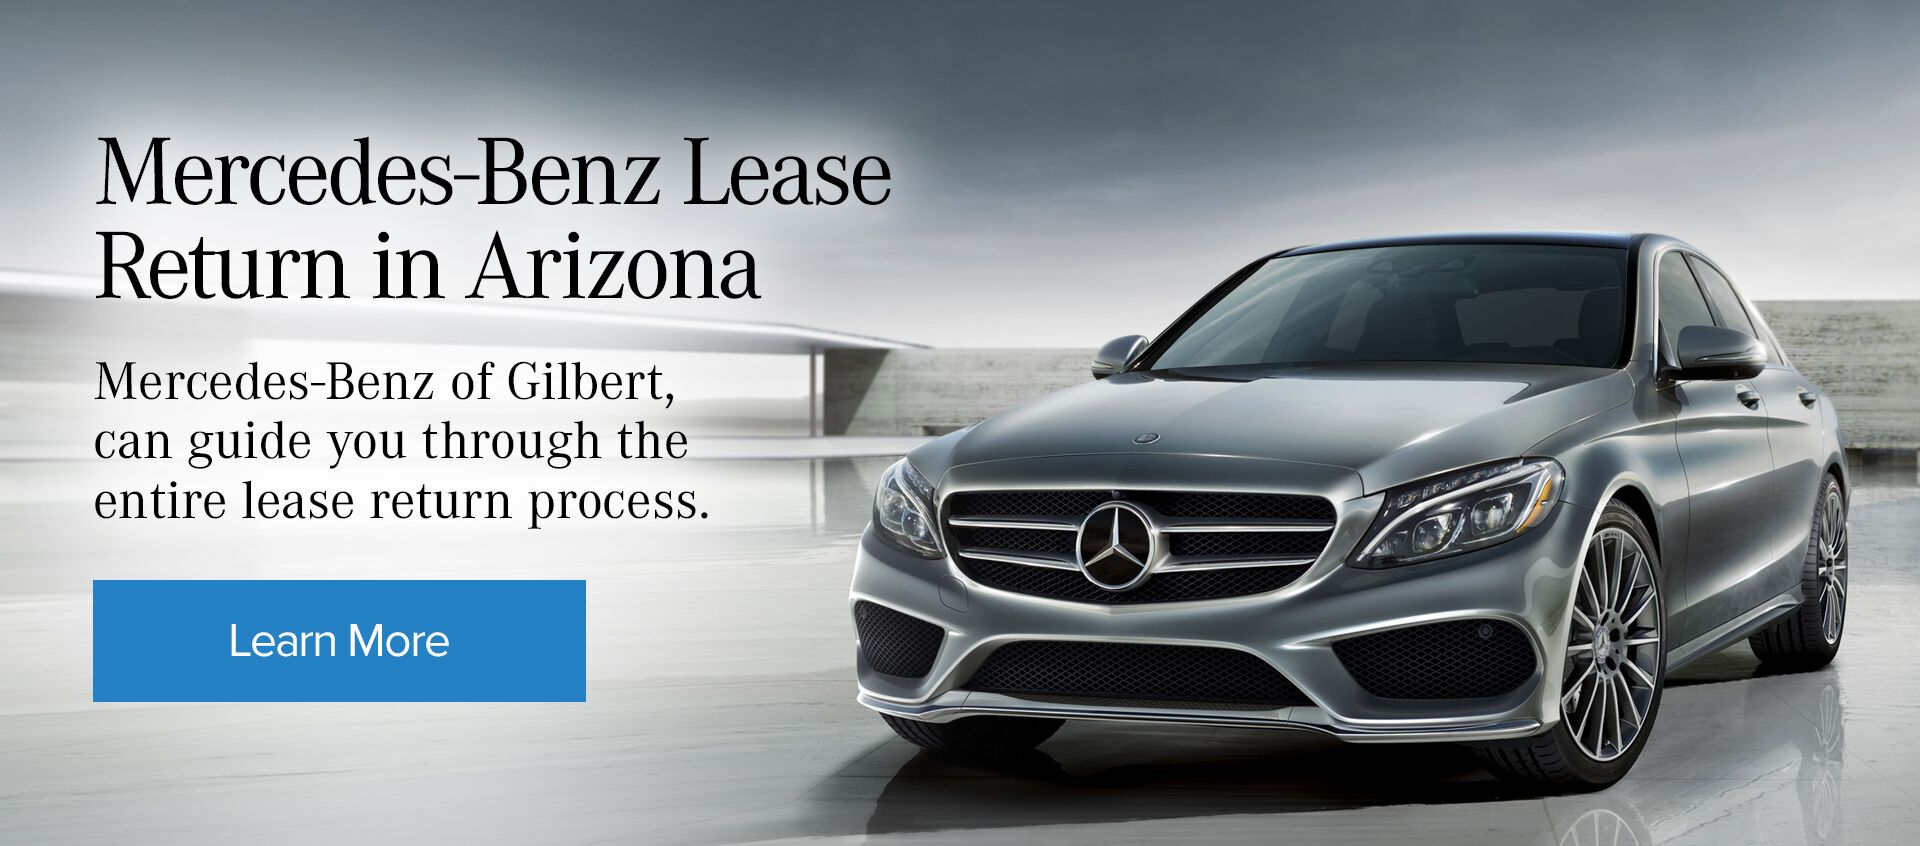 MB Lease Return Center of Arizona